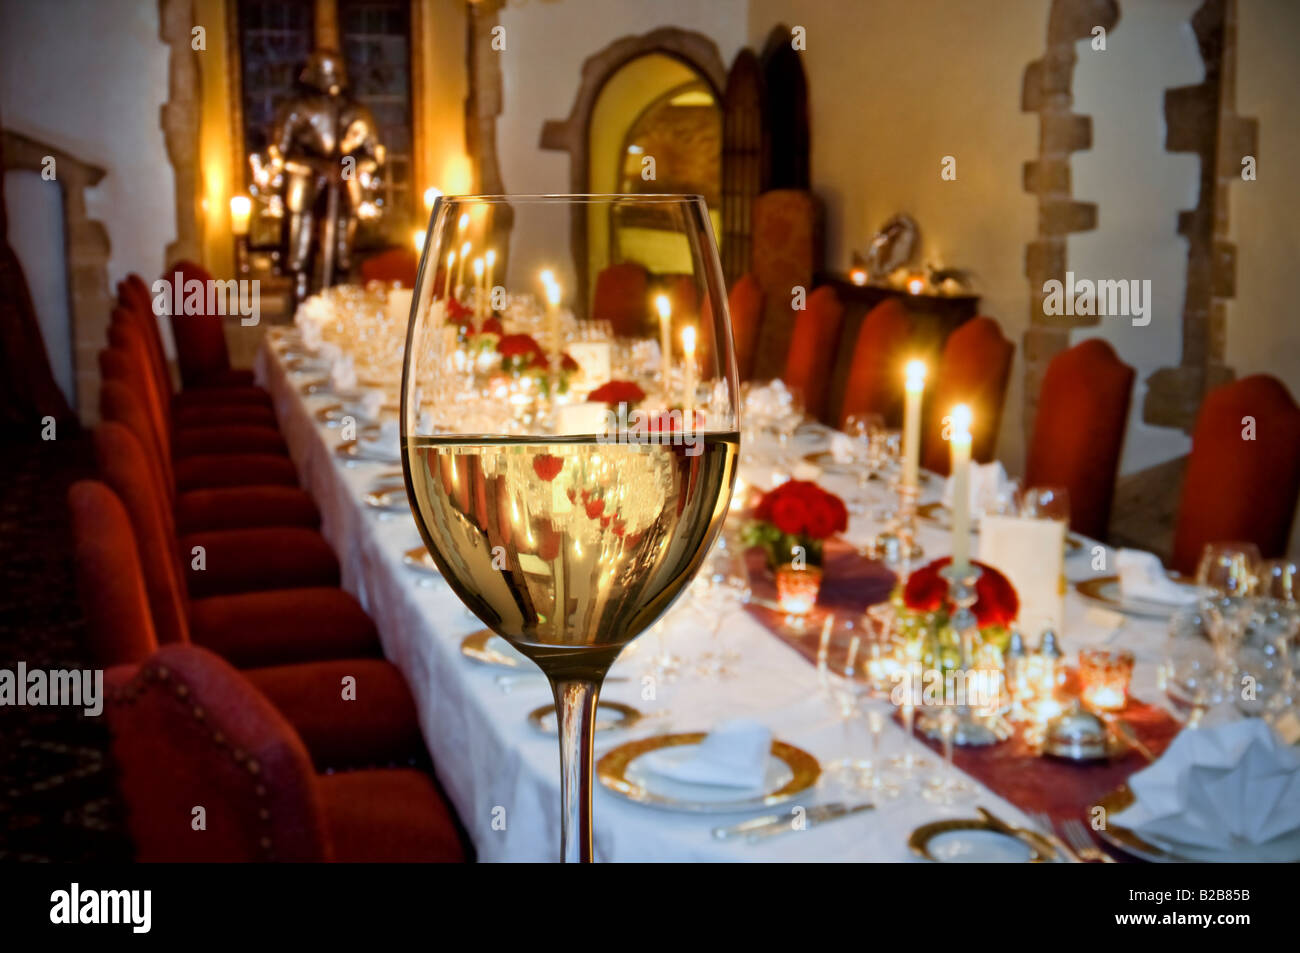 glass of fine white wine in foreground with a formal seated candlelit dinner party table prepared in background